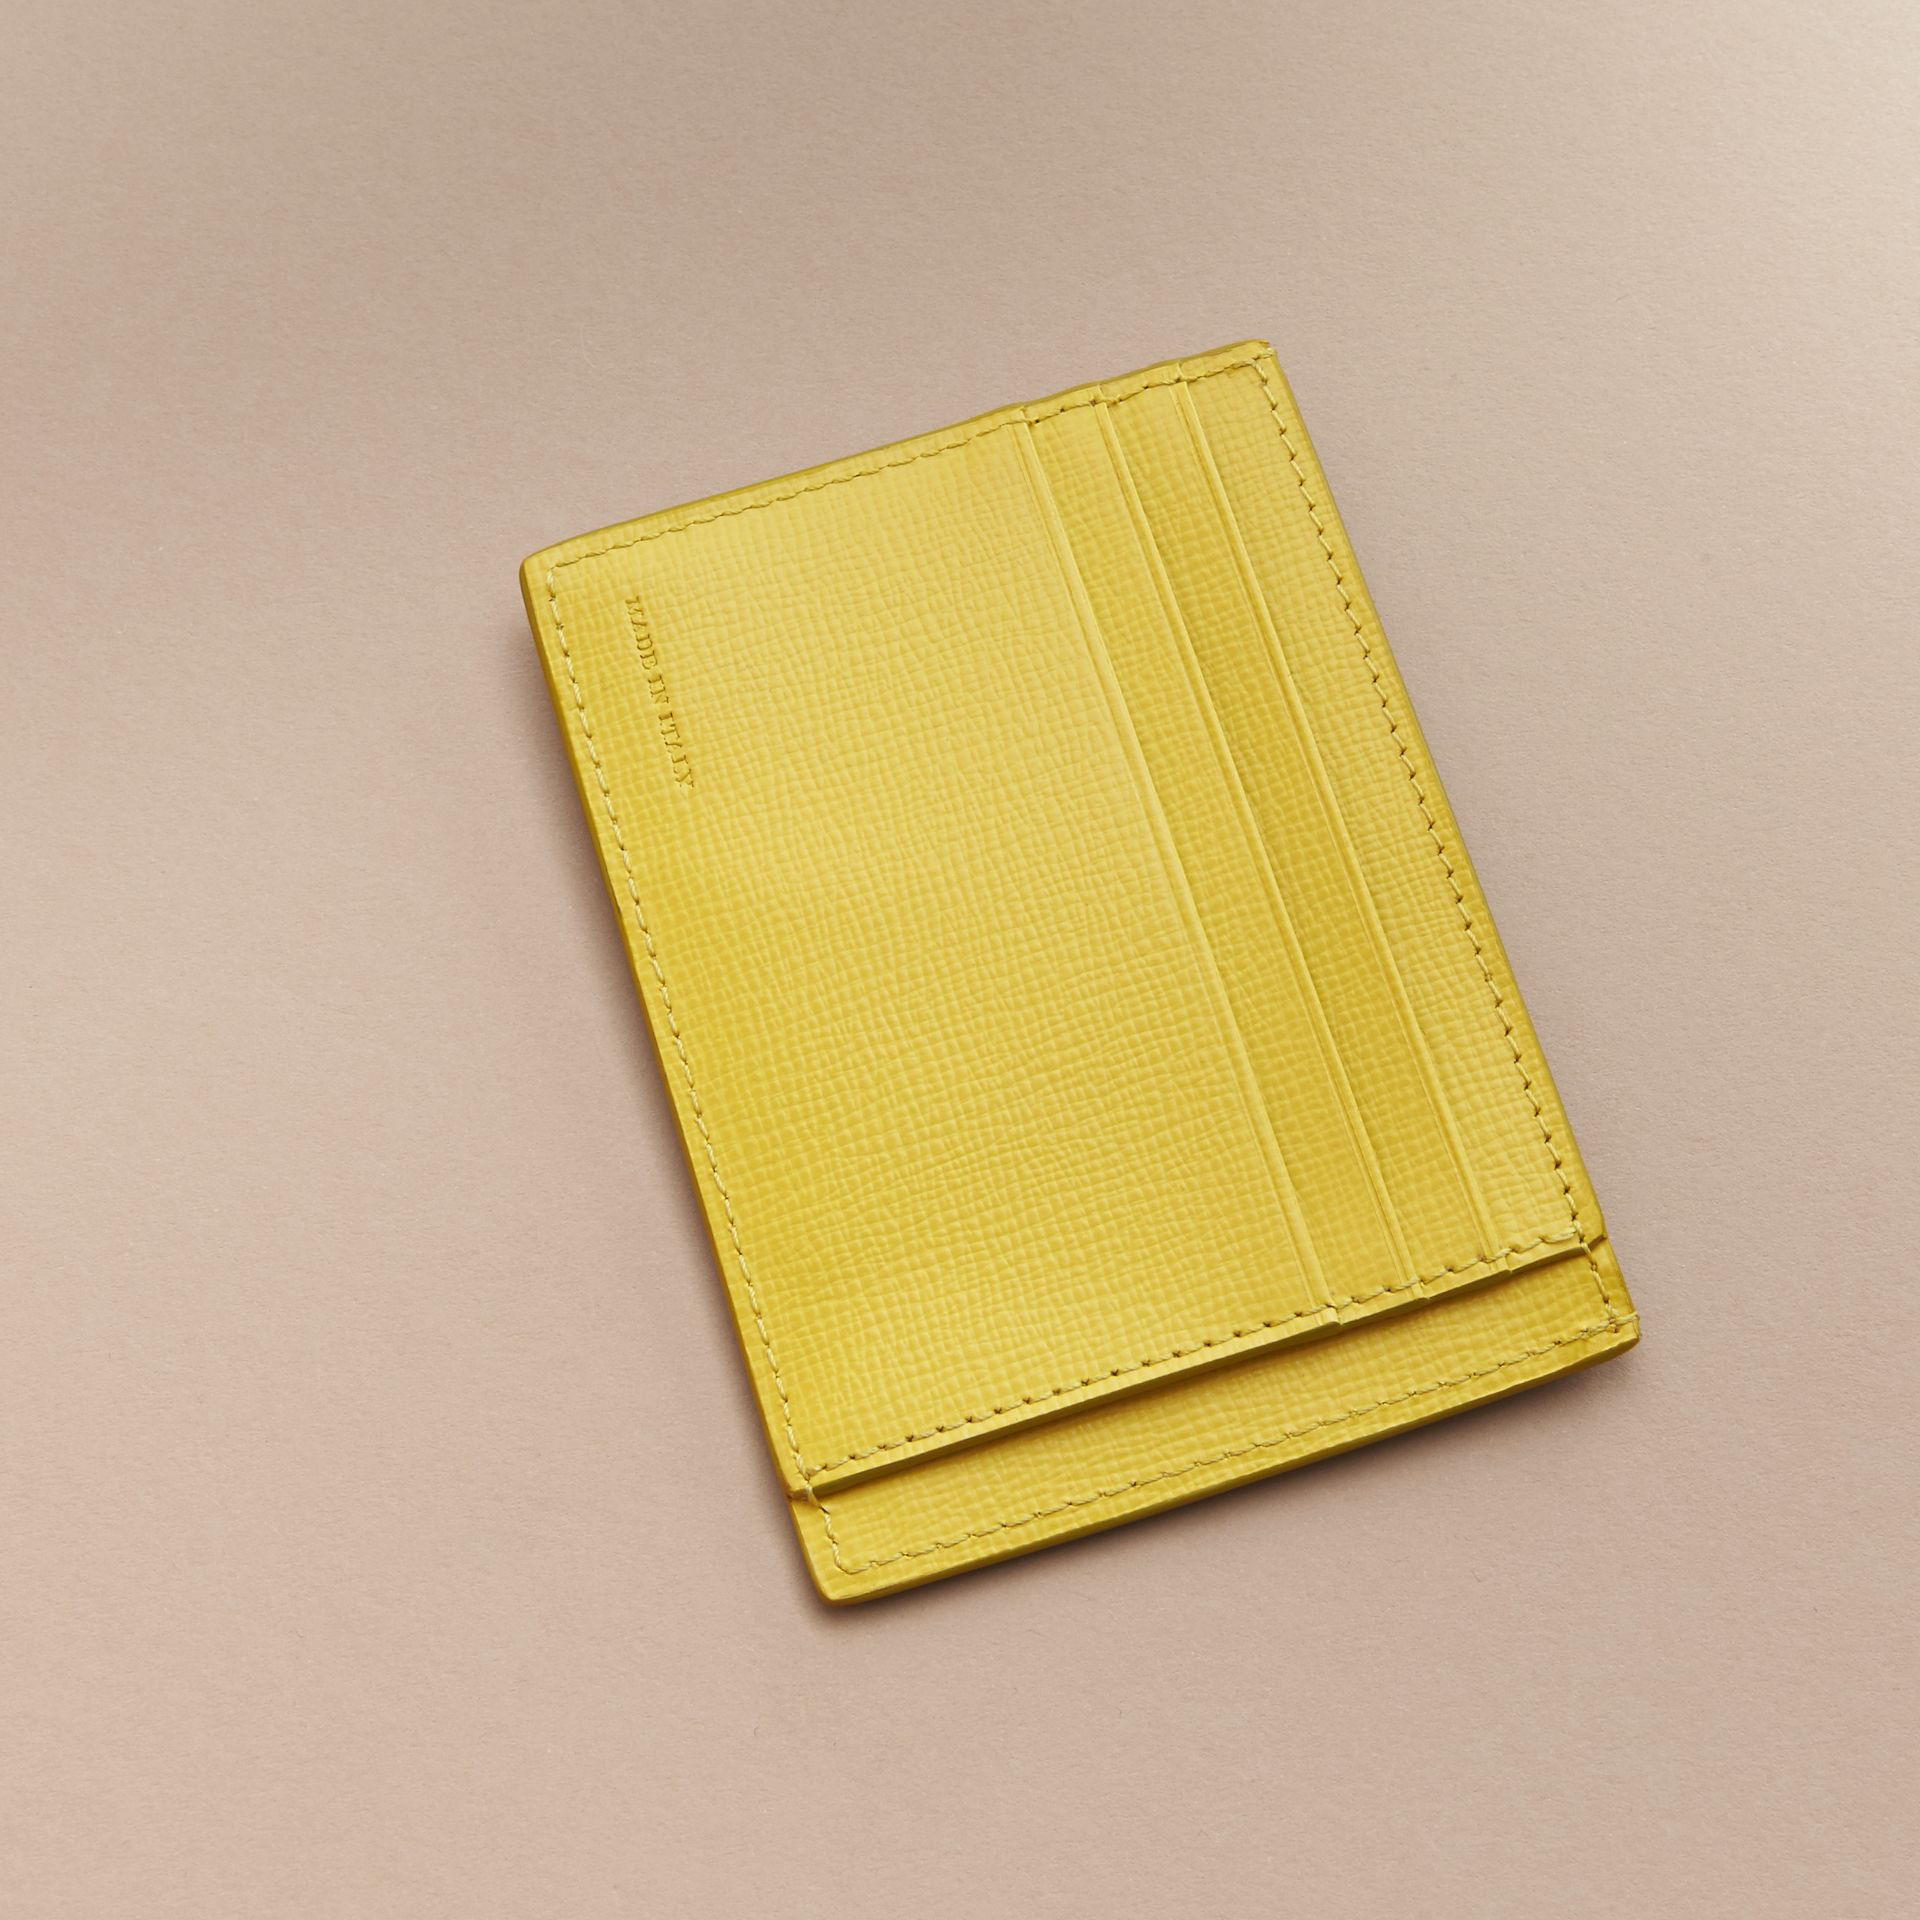 London Leather Card Case in Bright Citrus | Burberry Australia - gallery image 3